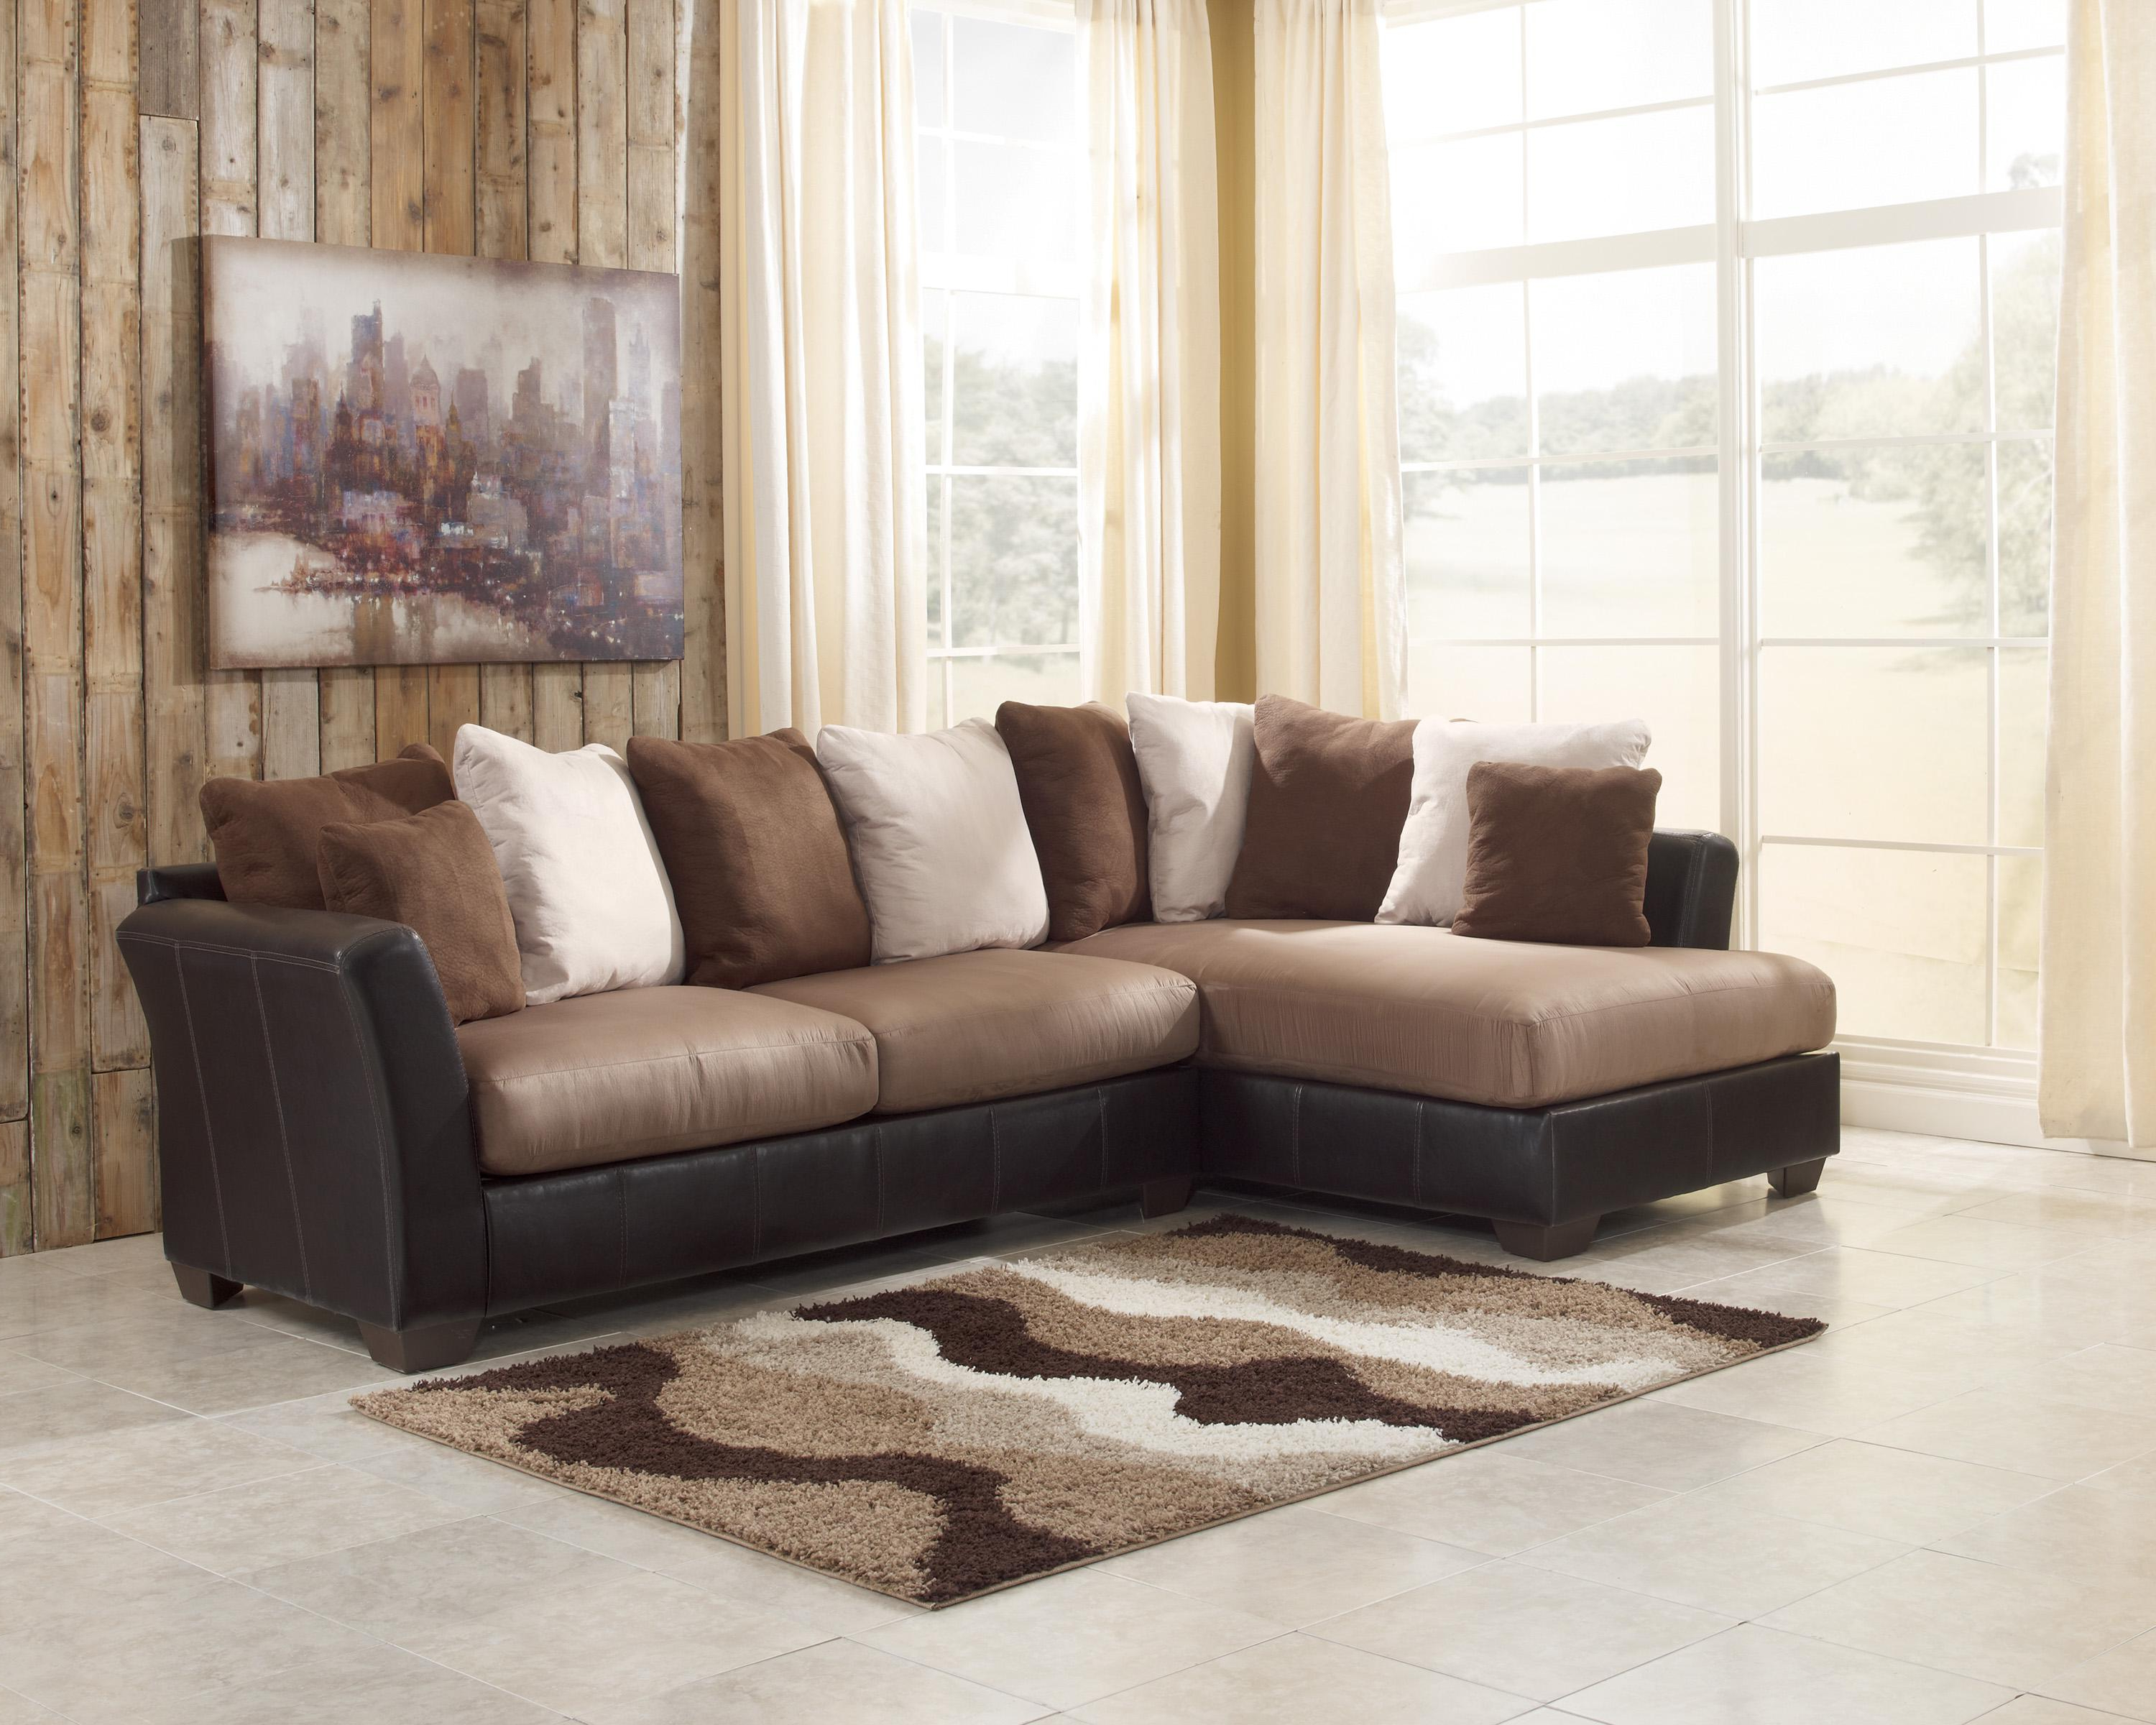 A 2 Piece Sectional Is A Unique Addition To Any Living Room – Elites For Preferred Evan 2 Piece Sectionals With Raf Chaise (View 2 of 20)